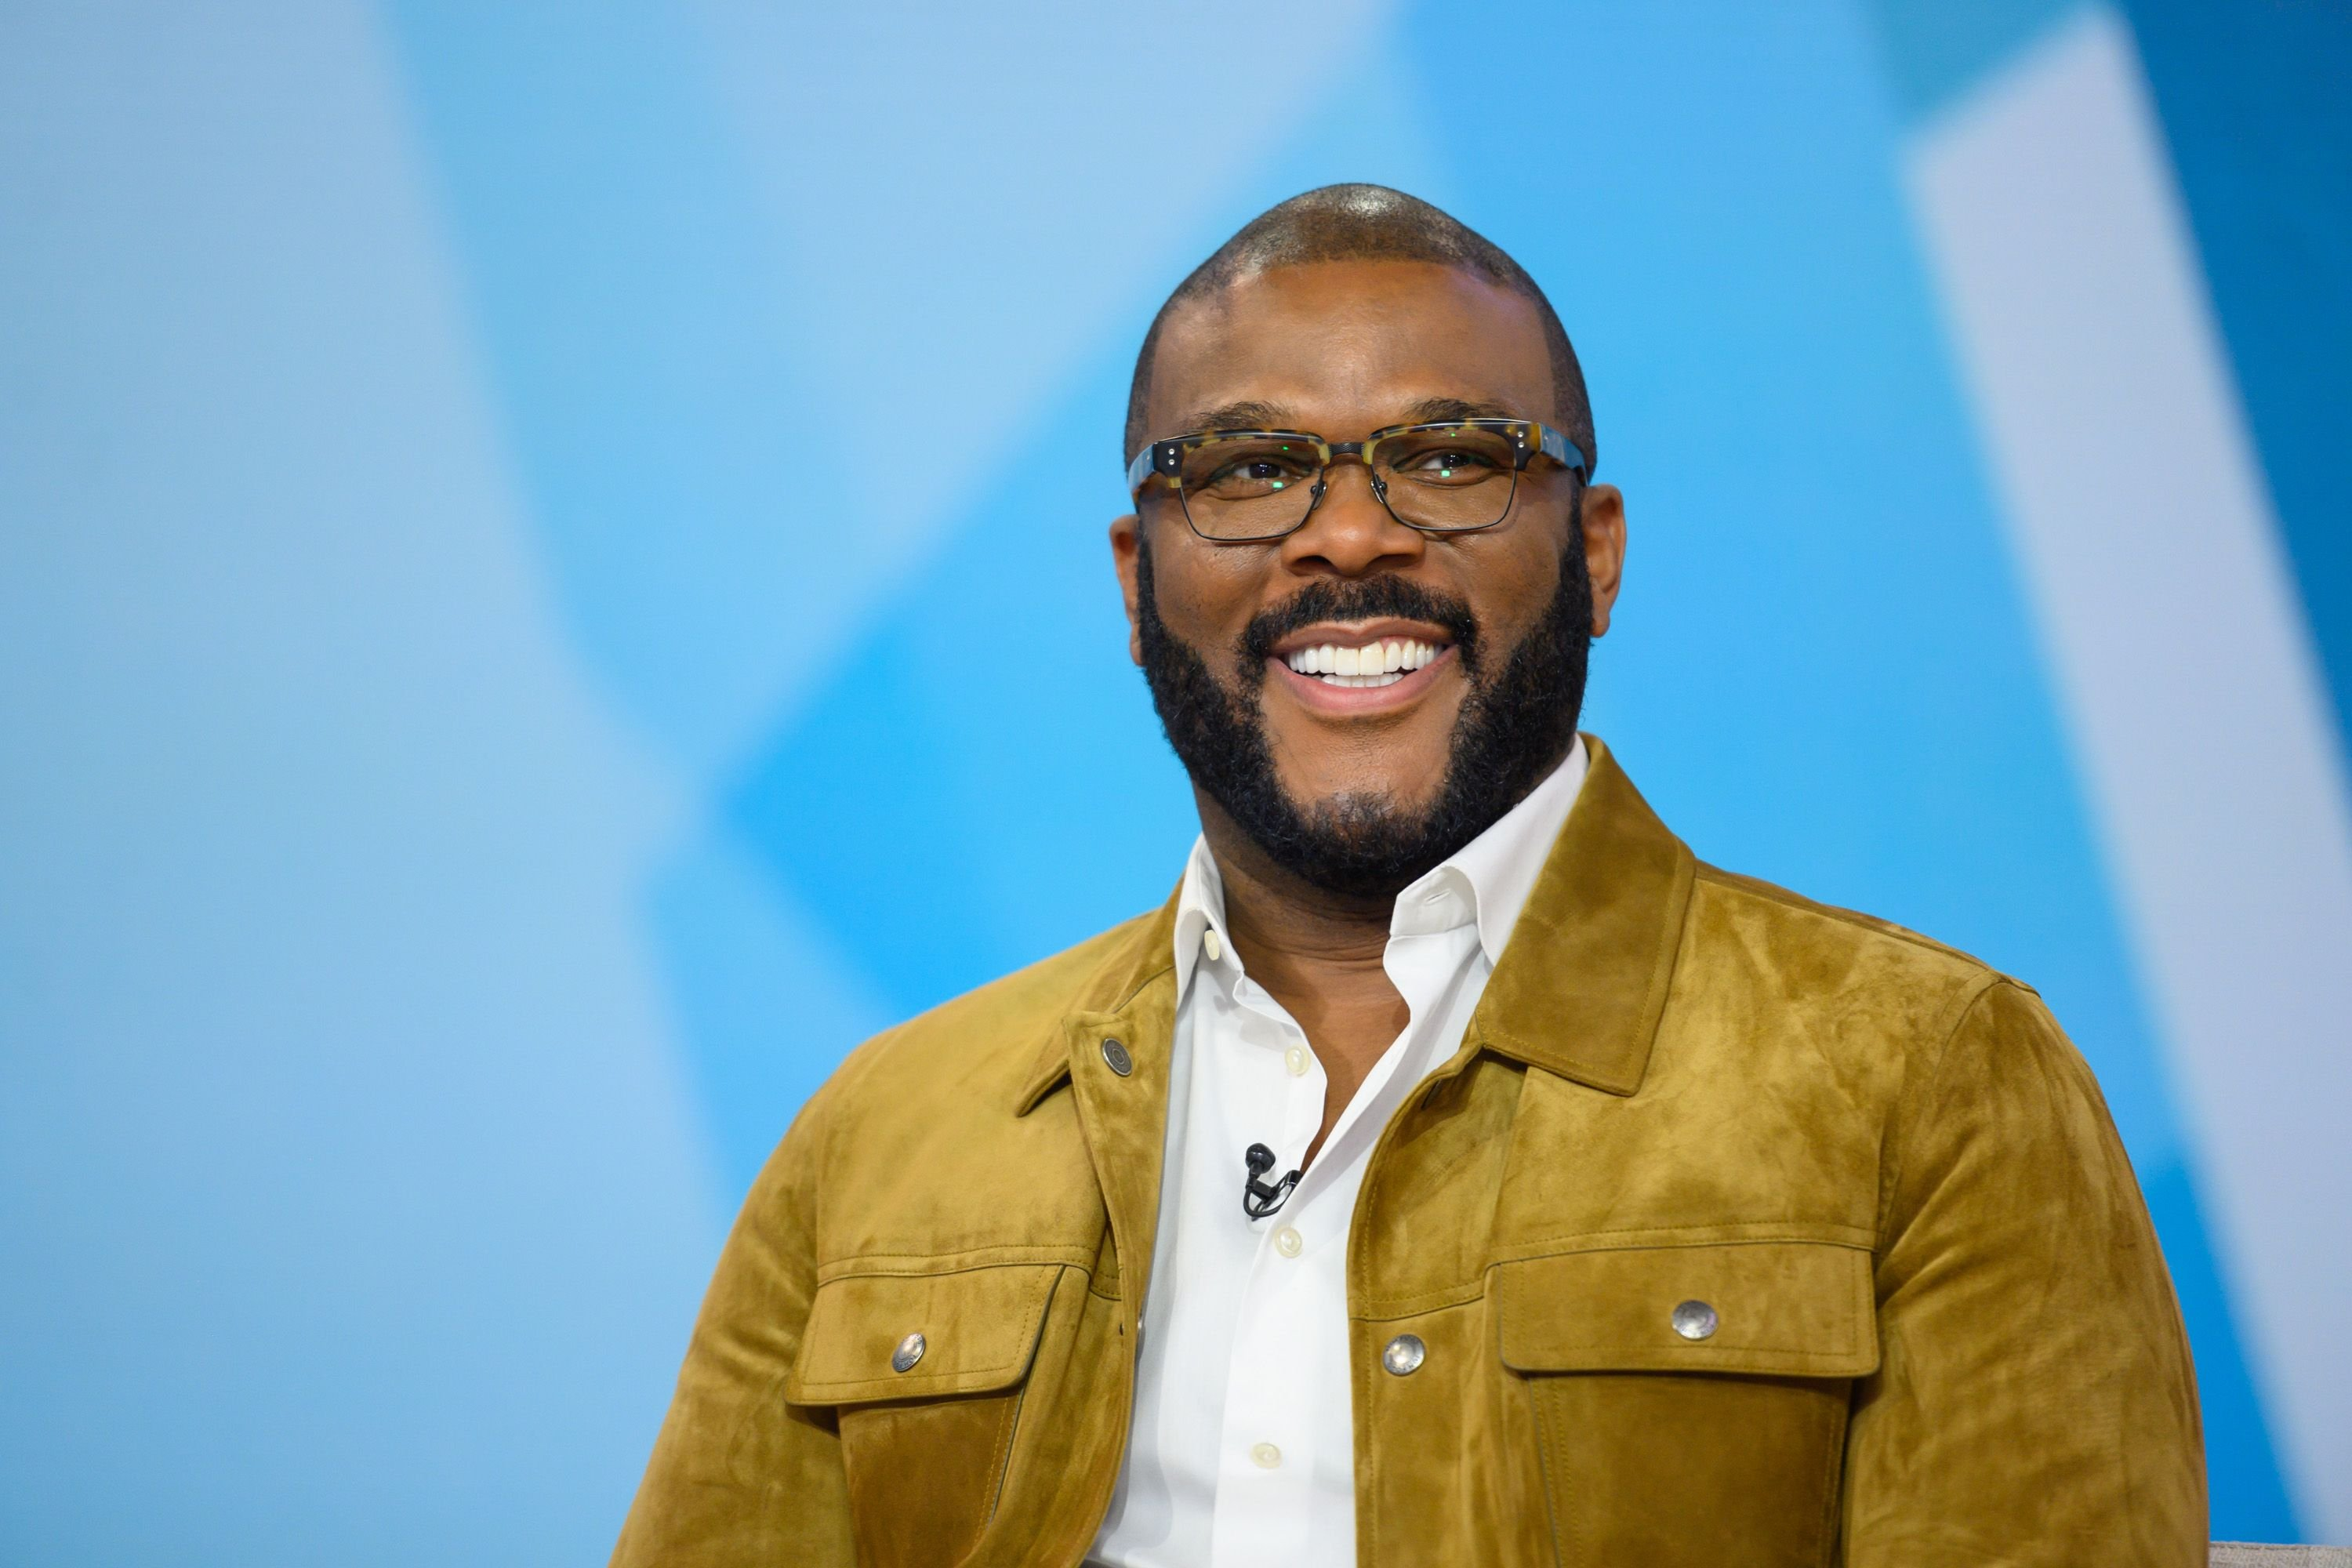 Tyler Perry at the 2019 Essence Festival at Ernest N. Morial Convention Center on July 07, 2019 | Photo: Getty Images